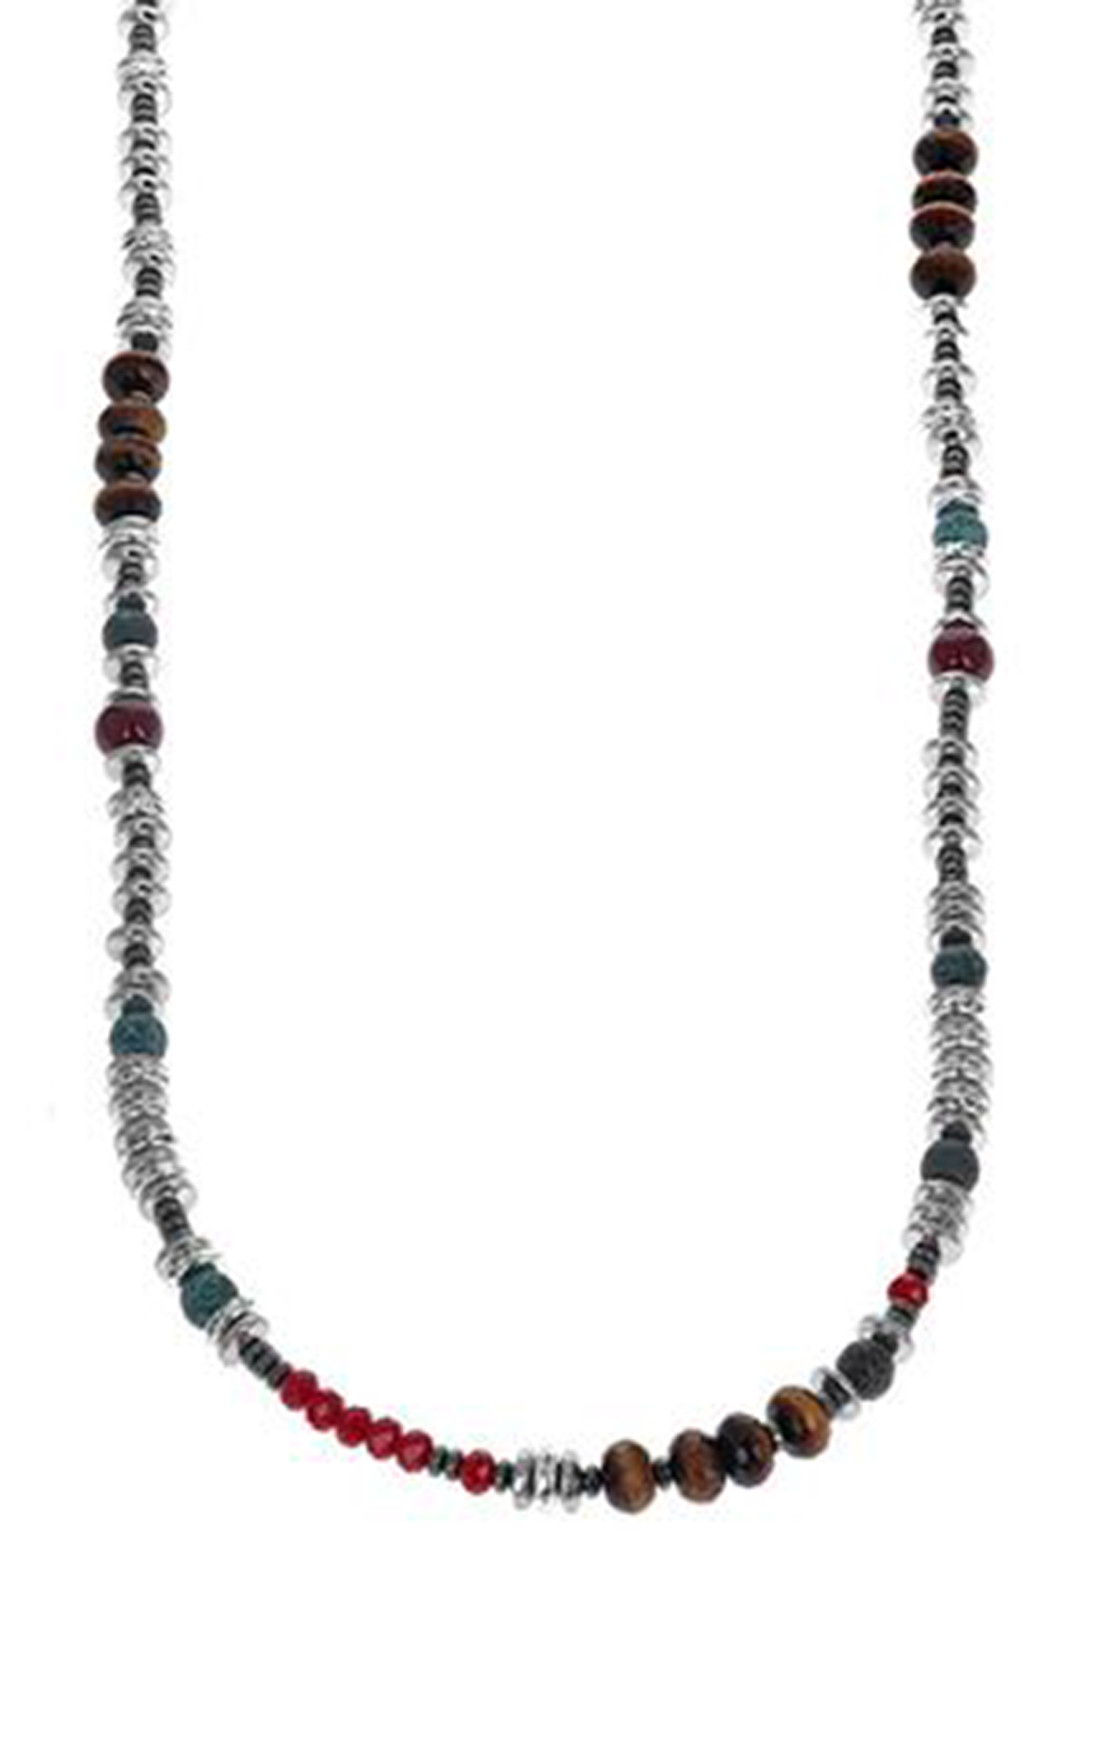 King Baby - Ceramic Tiger eye and Crystal Bead Necklace (K51-5565)